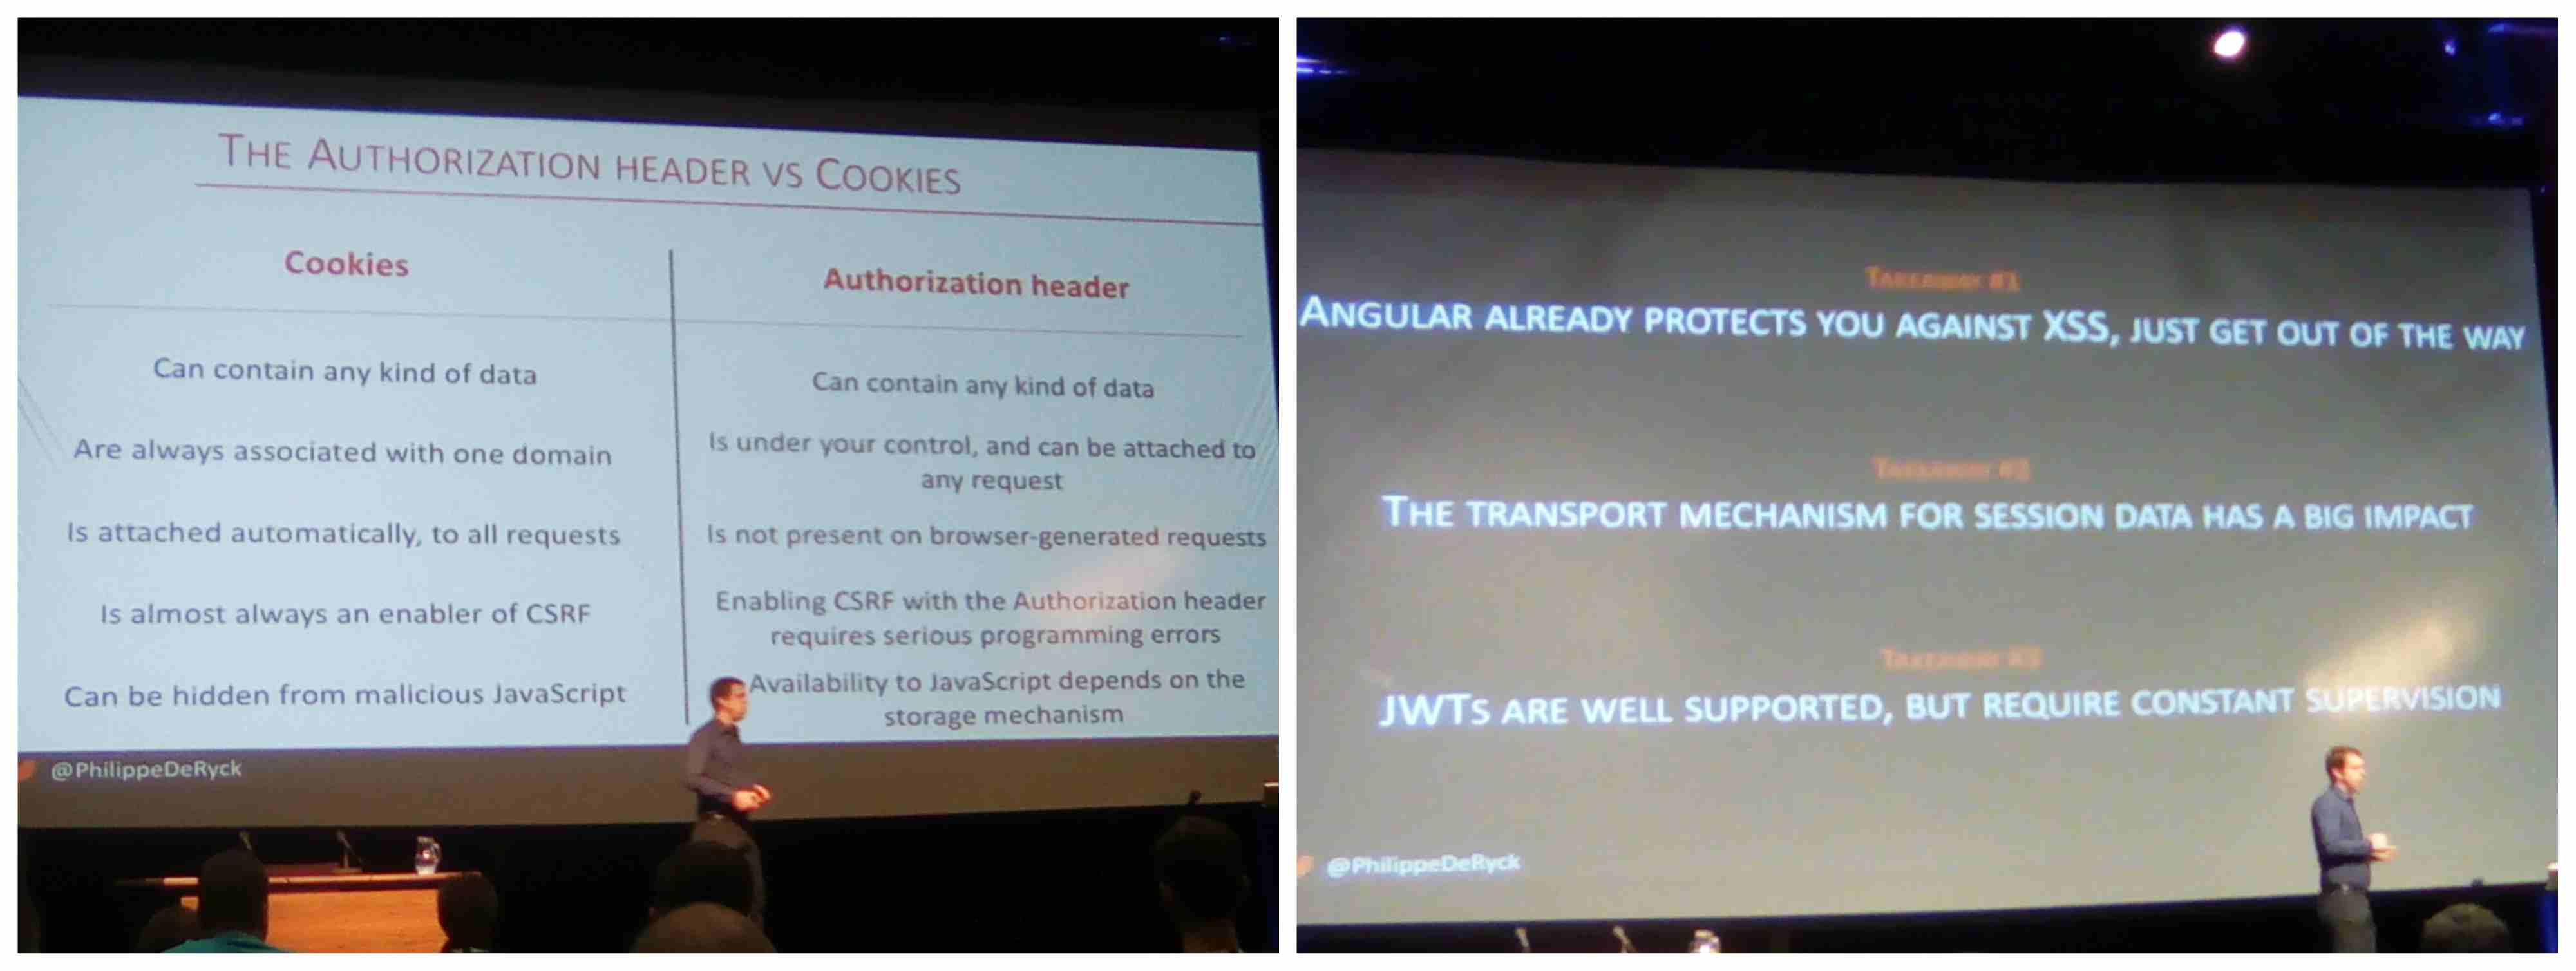 Boost your angular security